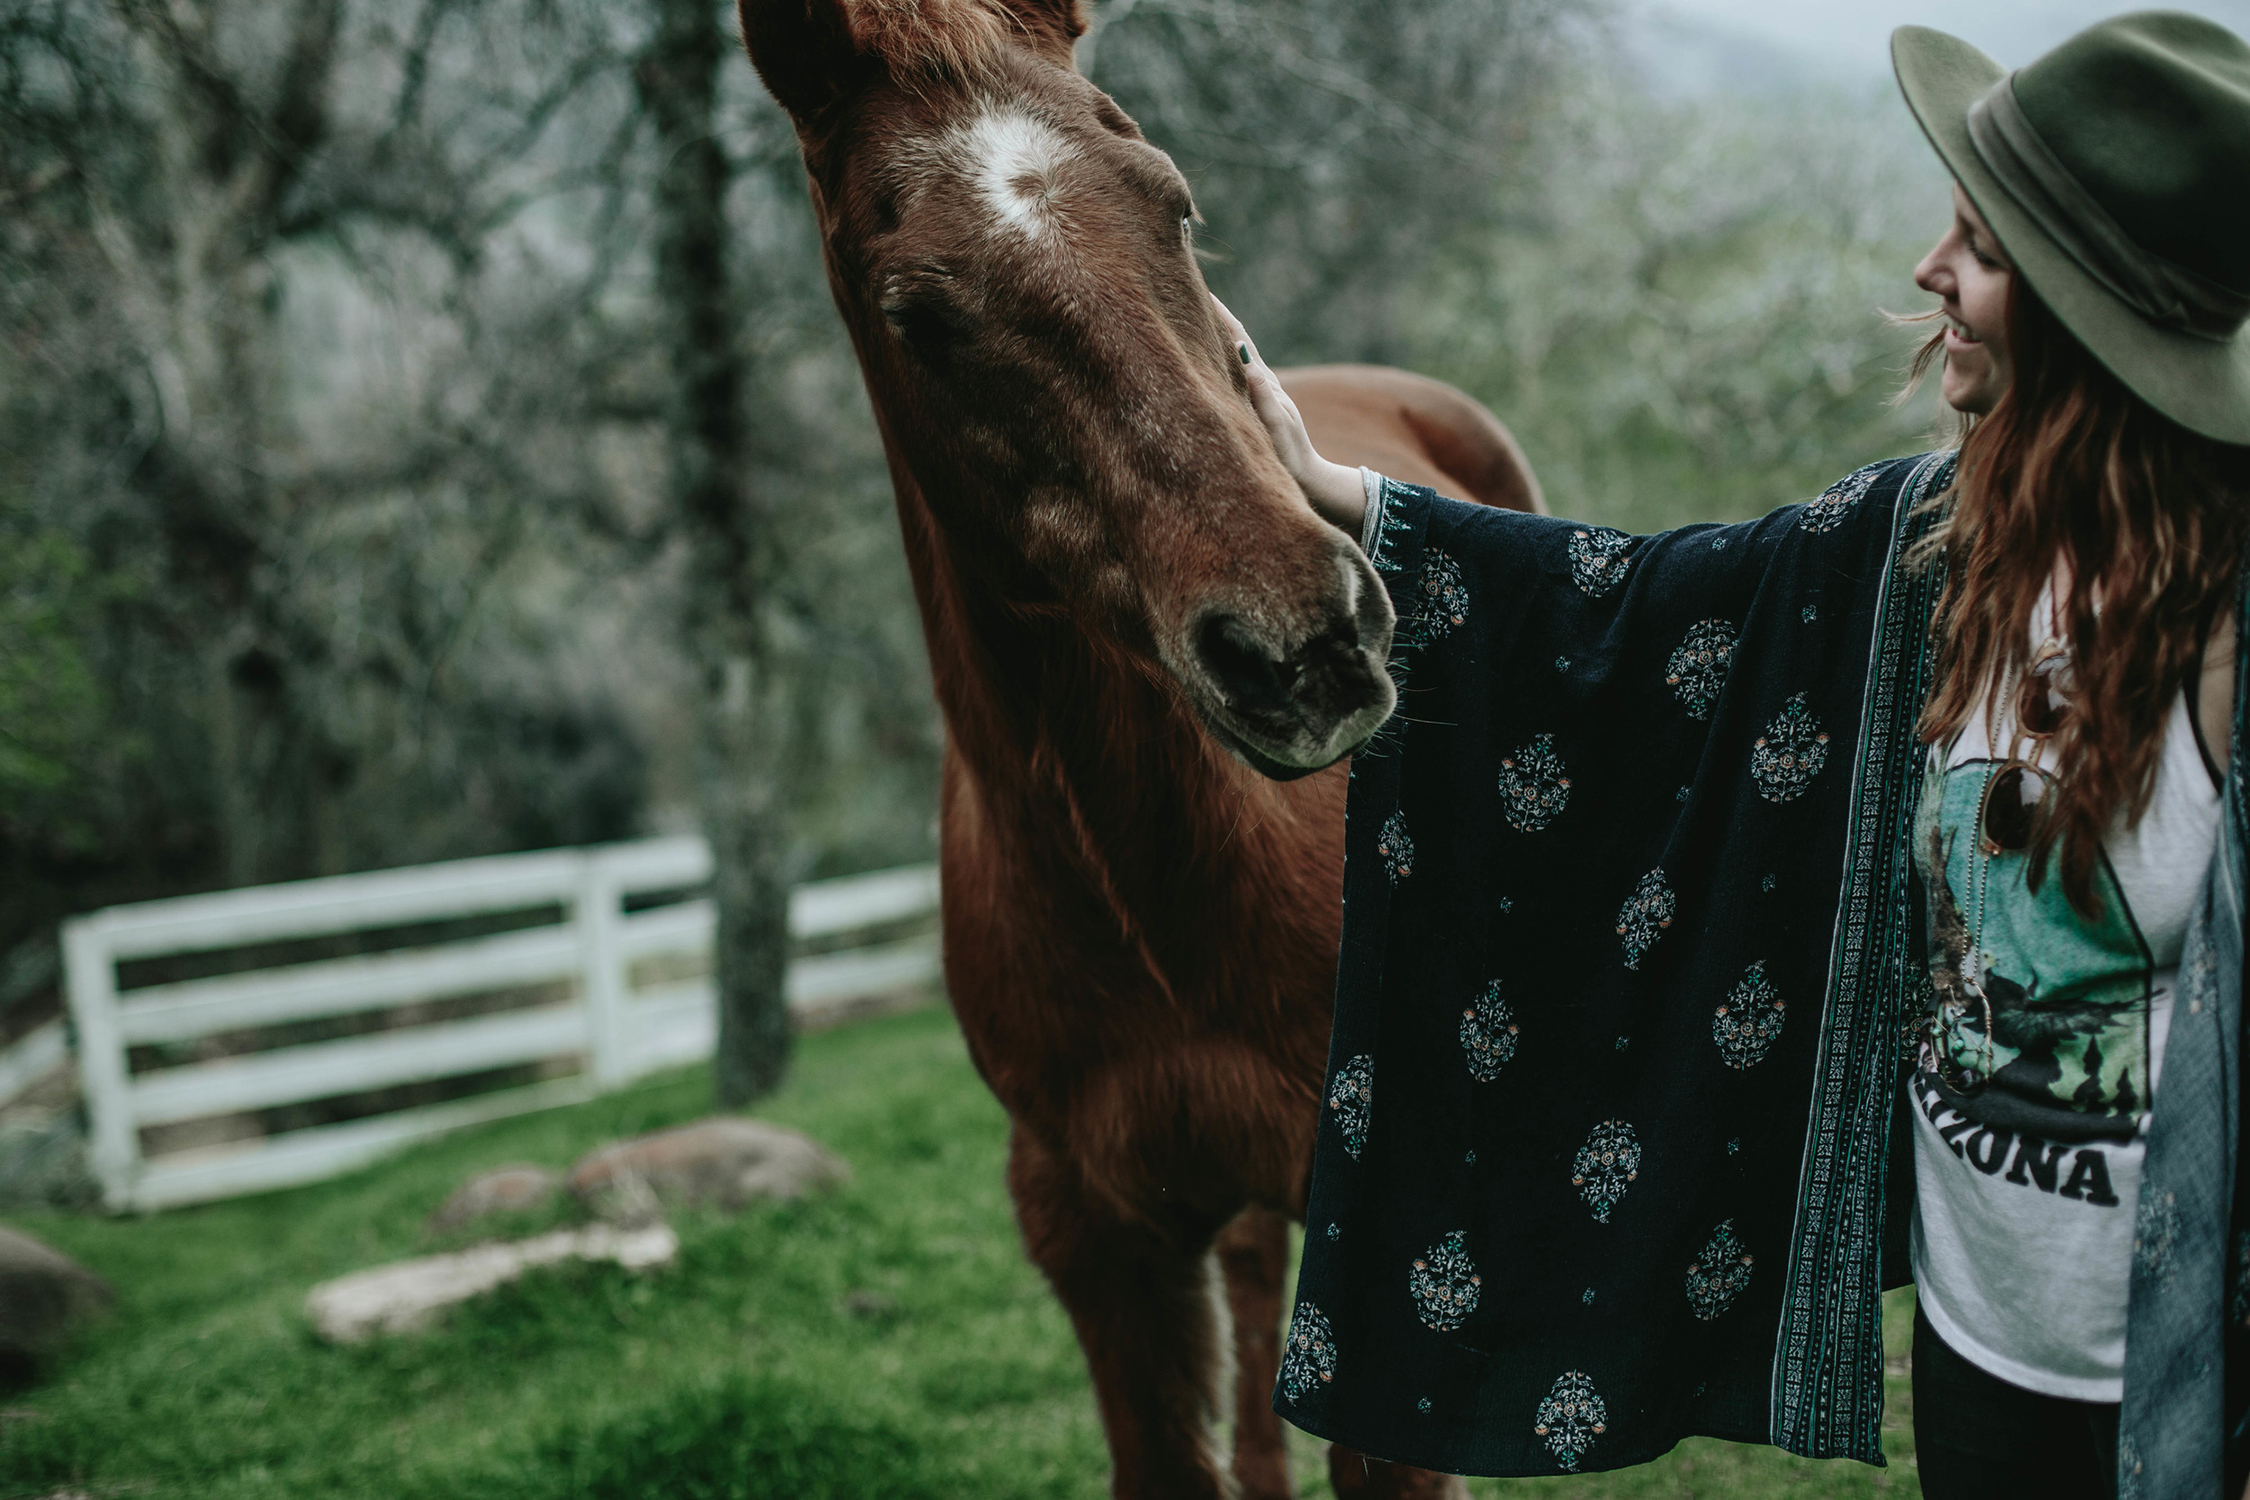 Redwood+Ranch+Gathering+by+The+Eternal+Child+--+Photographed+by+Valerie+Noell-11.jpg